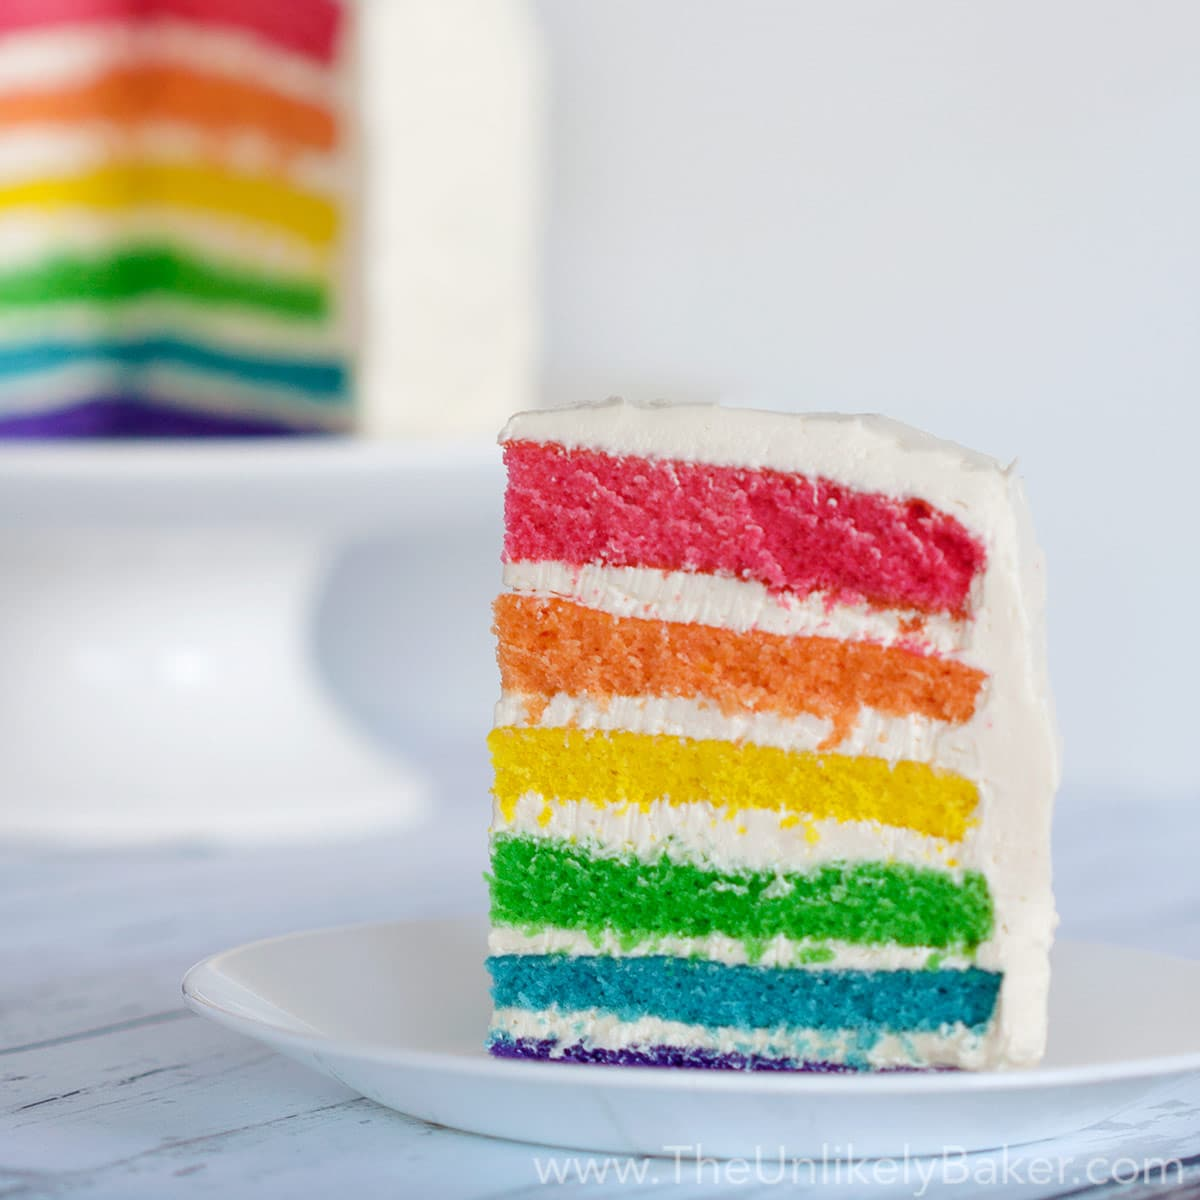 How To Make Layer Cake At Home